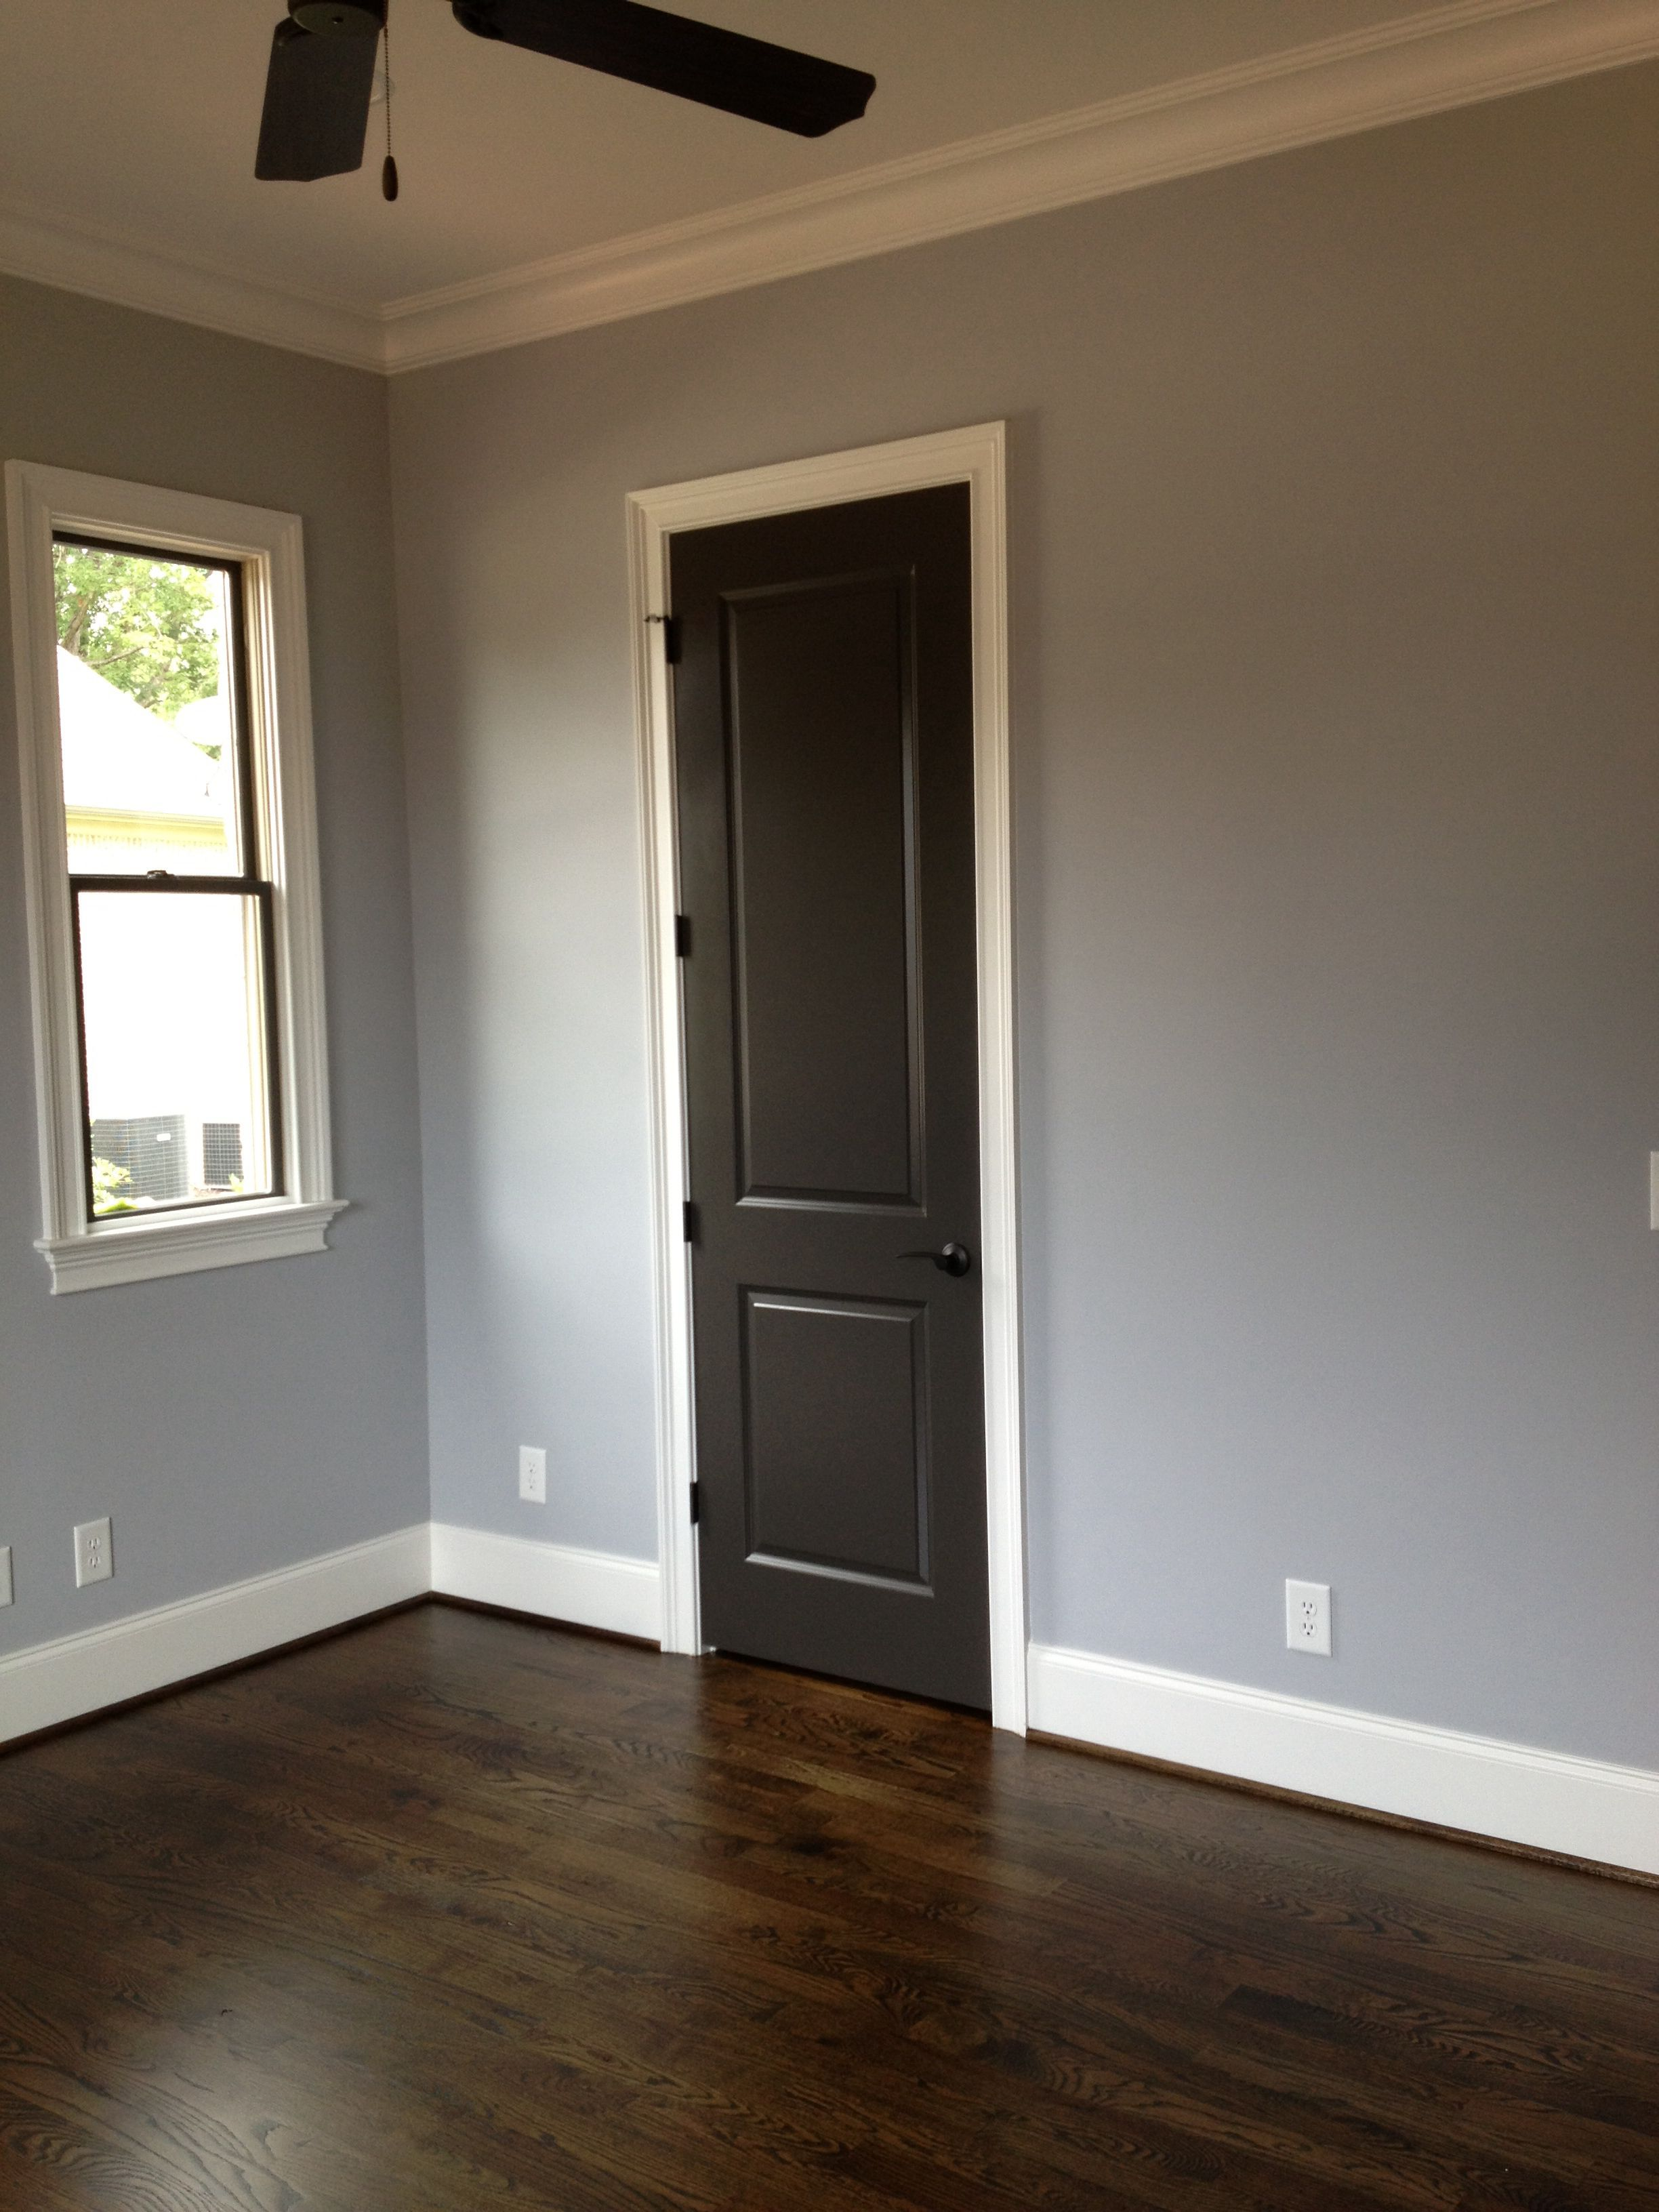 sherwin williams lazy gray and urbane bronze on doors and. Black Bedroom Furniture Sets. Home Design Ideas